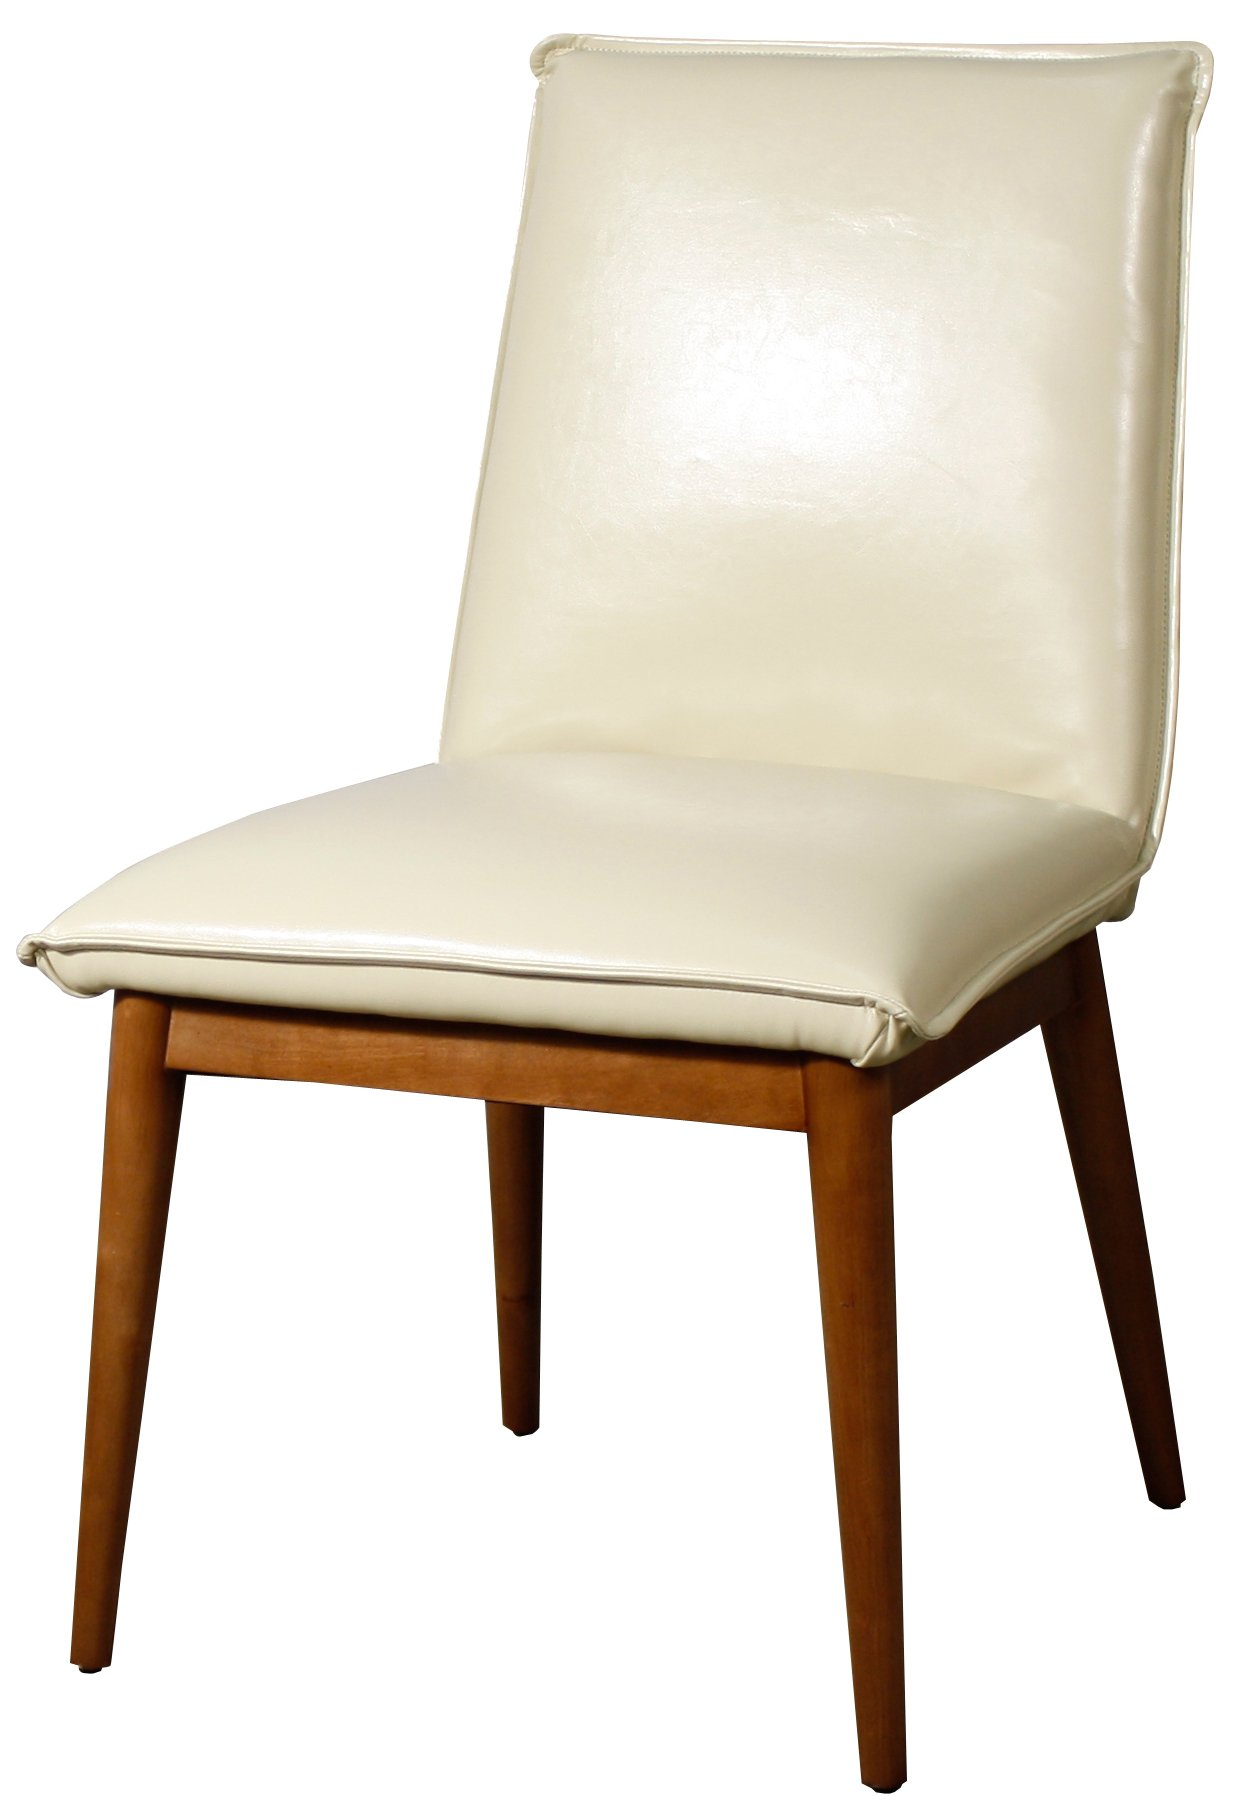 New Pacific Direct Lara Mid Mod Bonded Leather Chair,Brown Legs,Ivory,Set of 2 - This Full-Back Dining Chair Is A Perfect Piece For Any Mid Century Modern Room Décor. Padded Seat And Back Provide Comfort For Seating. The Piping Edges Increases Durability And Aids In Overall Strength Of The Upholstery. Frame: Solid Rubber Wood ; Finish: Walnut Upholstery: High Quality Bonded Leather; Strong And Durable To Keep Shape;  Prevents Fading; Easy To Clean And Maintain - kitchen-dining-room-furniture, kitchen-dining-room, kitchen-dining-room-chairs - 615esk8NKWL -